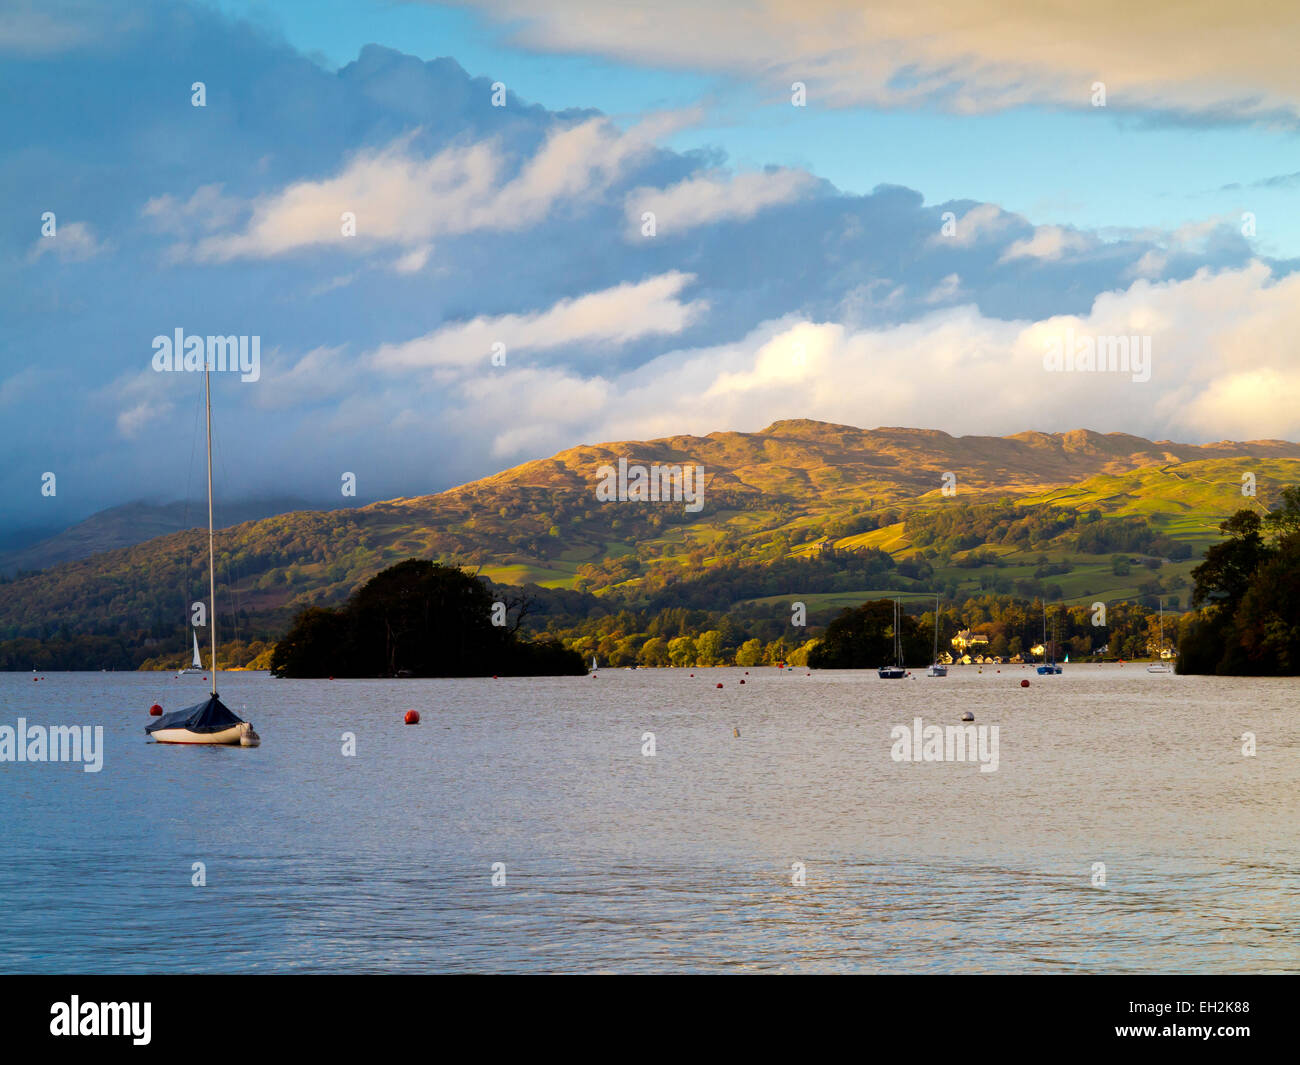 View across Lake Windermere in the Lake District National Park Cunbria UK showing boats on the water and fells in - Stock Image